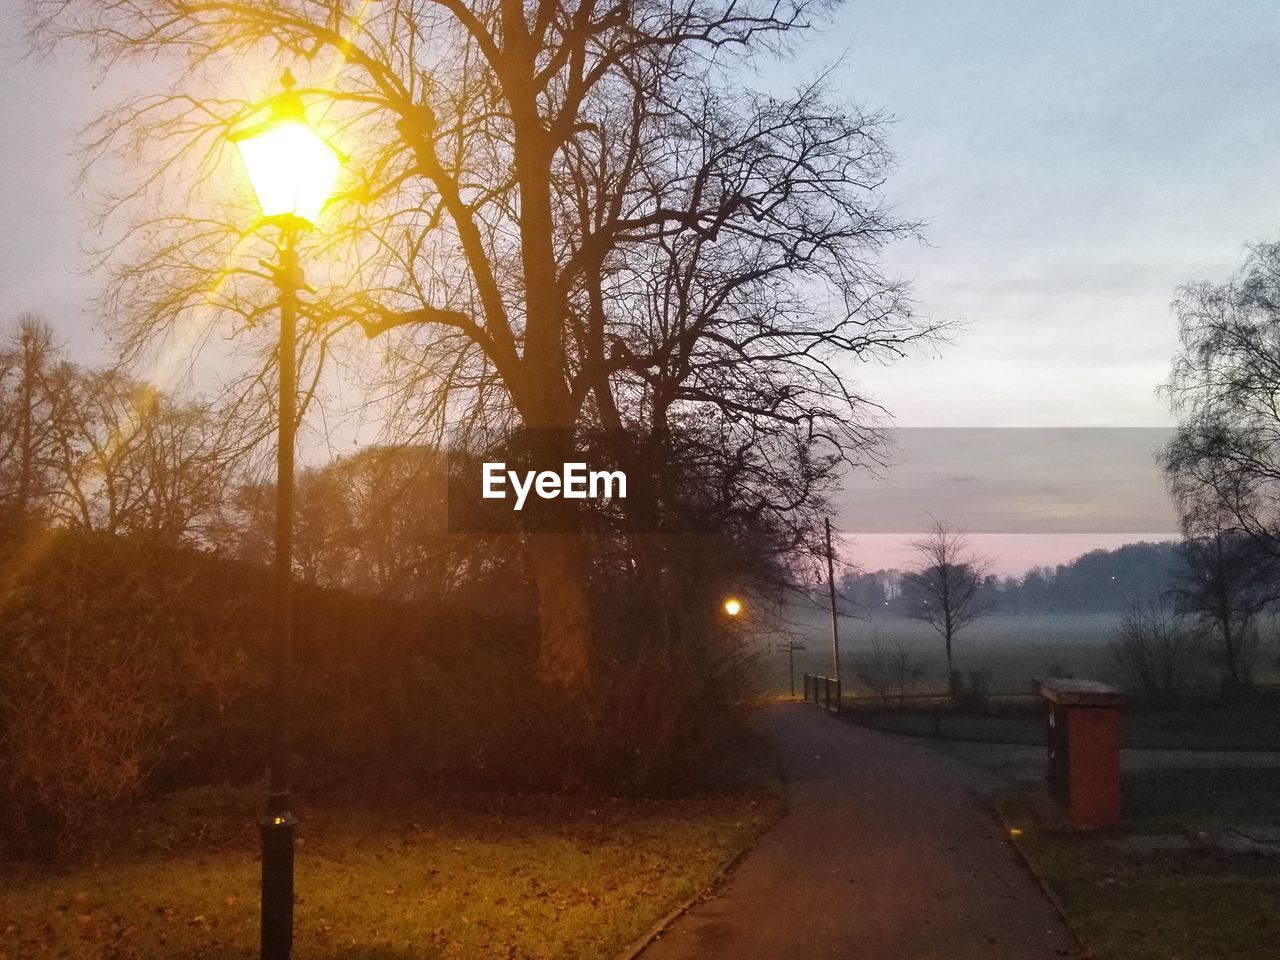 tree, sky, sun, bare tree, sunset, tranquil scene, no people, beauty in nature, nature, tranquility, outdoors, scenics, the way forward, road, landscape, fog, branch, day